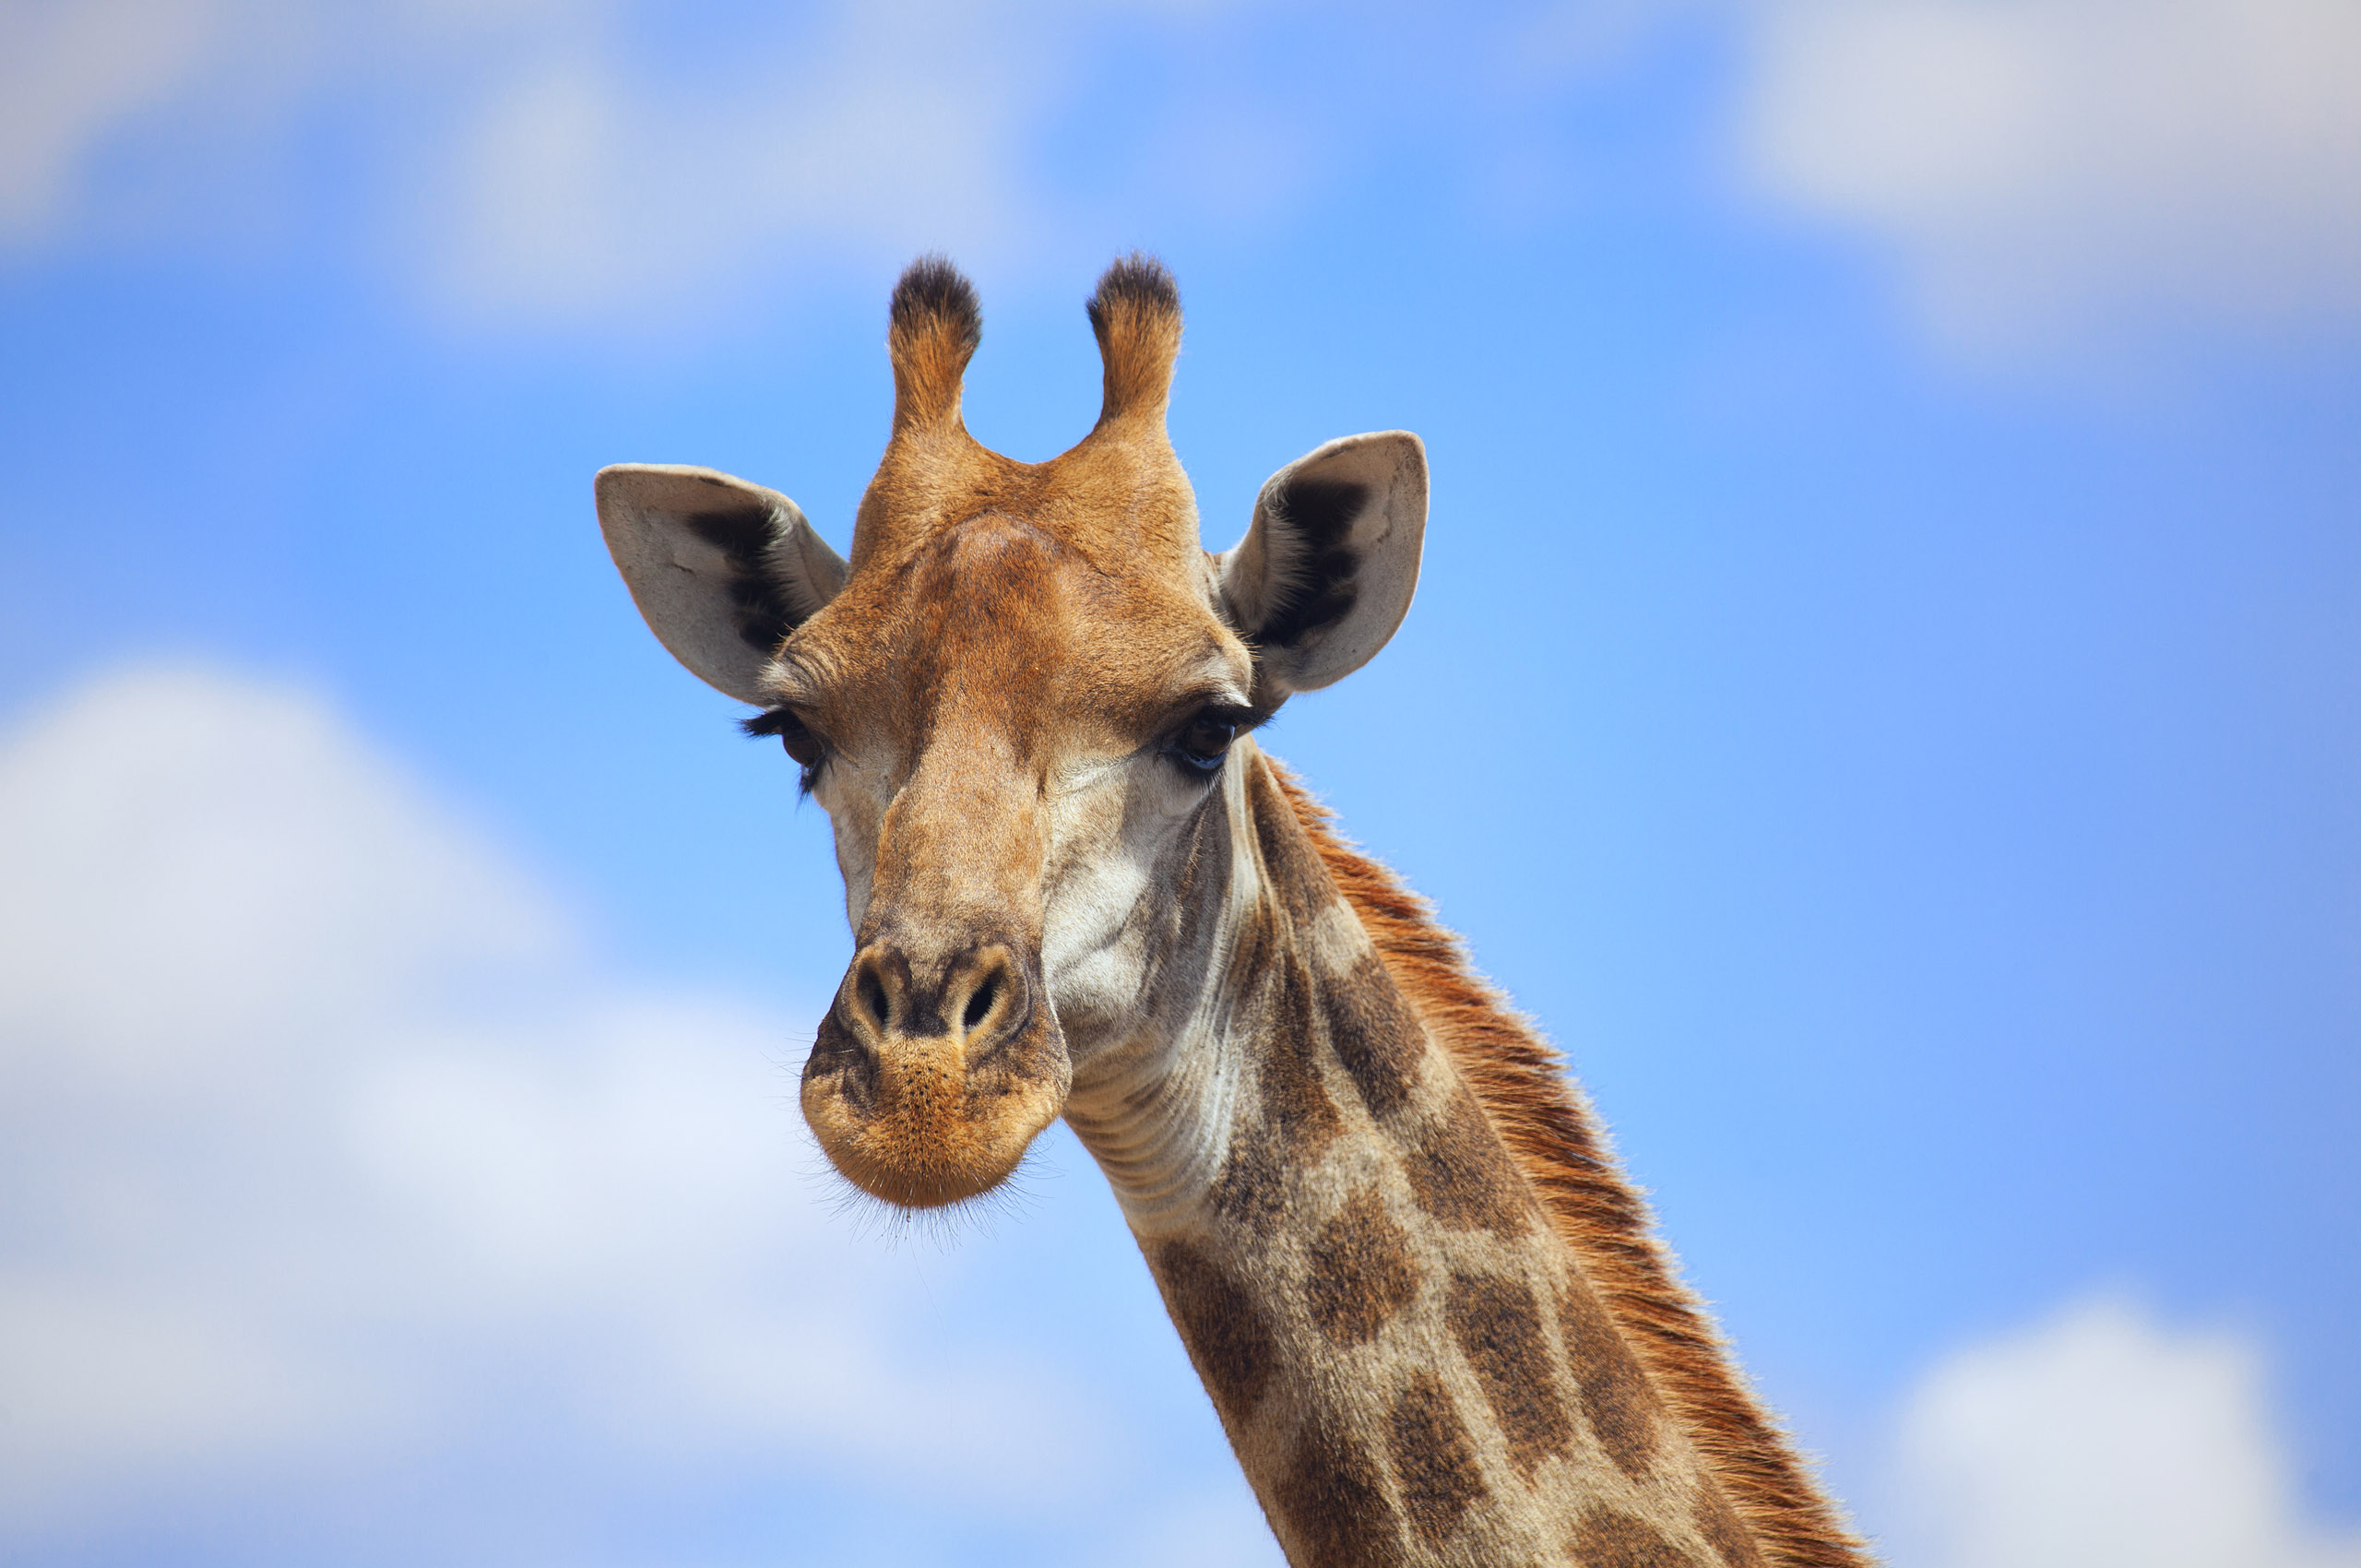 Hd Animal Wallpapers Cool Images Wild Life Download: Giraffe Full HD Wallpaper And Background Image